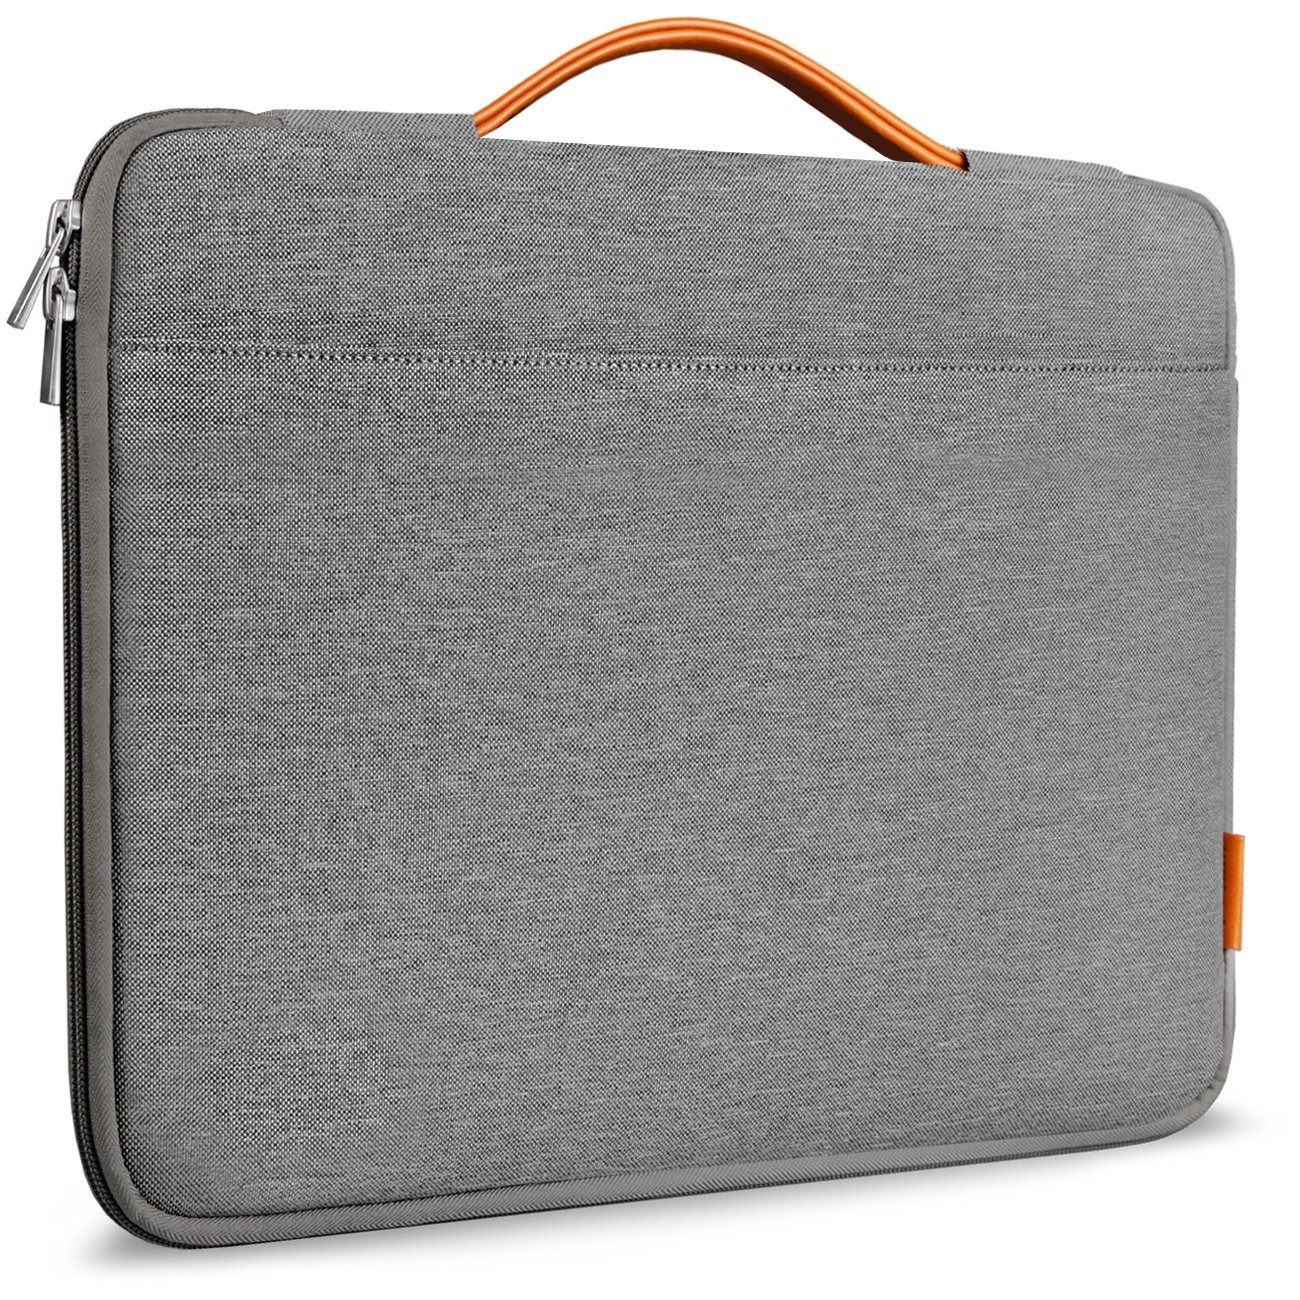 2019~new Laptop Sleeve Case Cover-Bag for Newest Macbook Air 13 inch Ultrabook